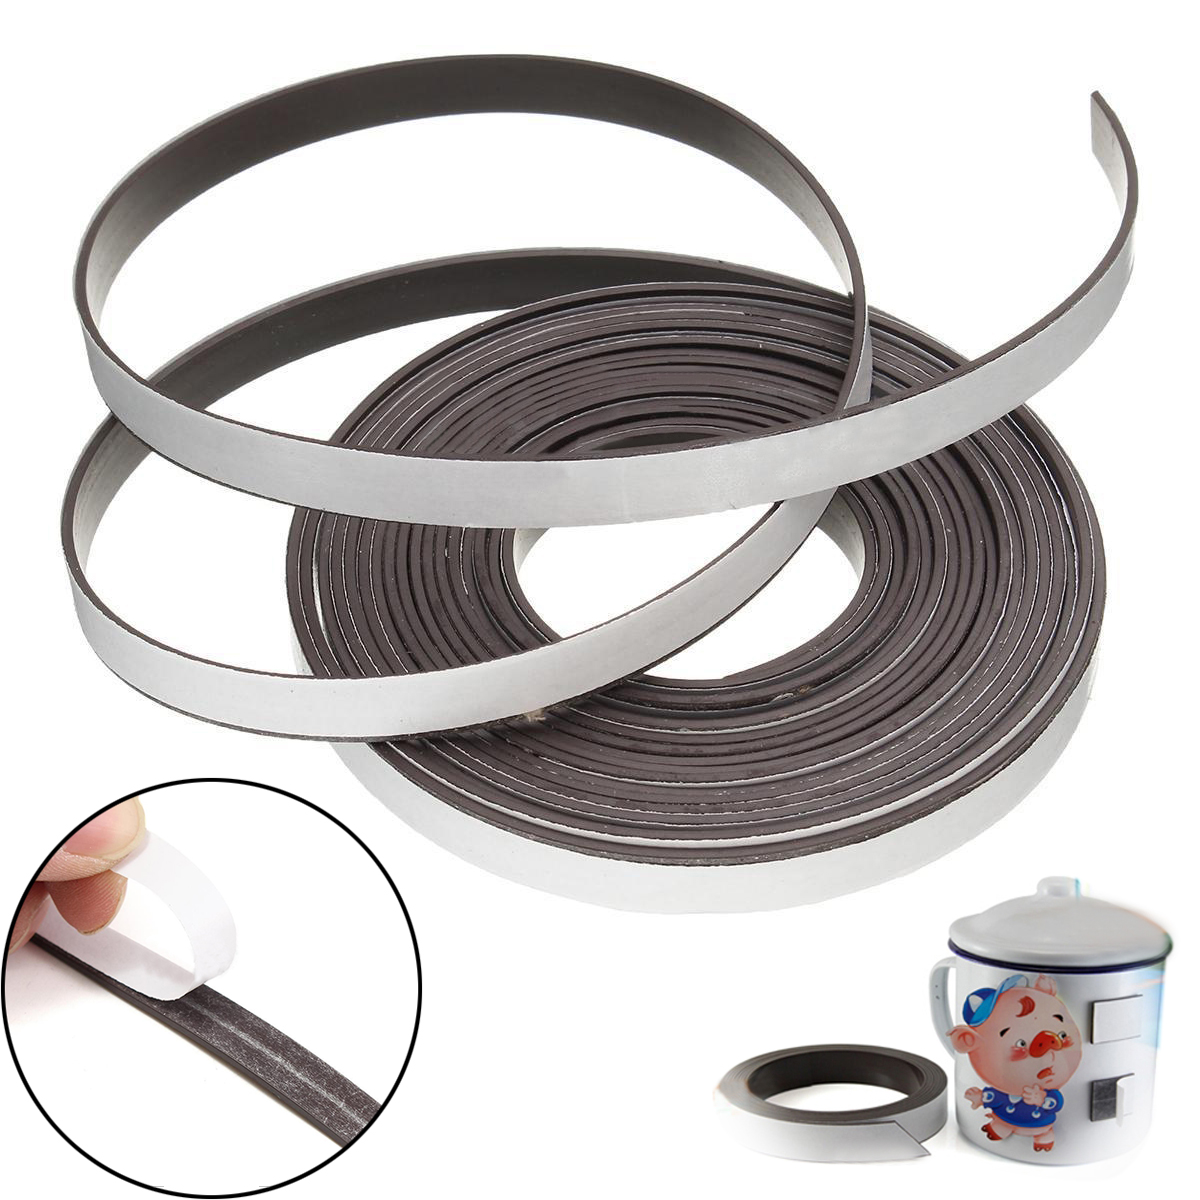 New 5M Rubber Magnetic Stripe Self Adhesive Flexible Magnet DIY Strip Tape For Home School Supplies free shipping 2 meters self adhesive flexible magnetic strip magnet tape width20x1 5mm ad teaching rubber magnet